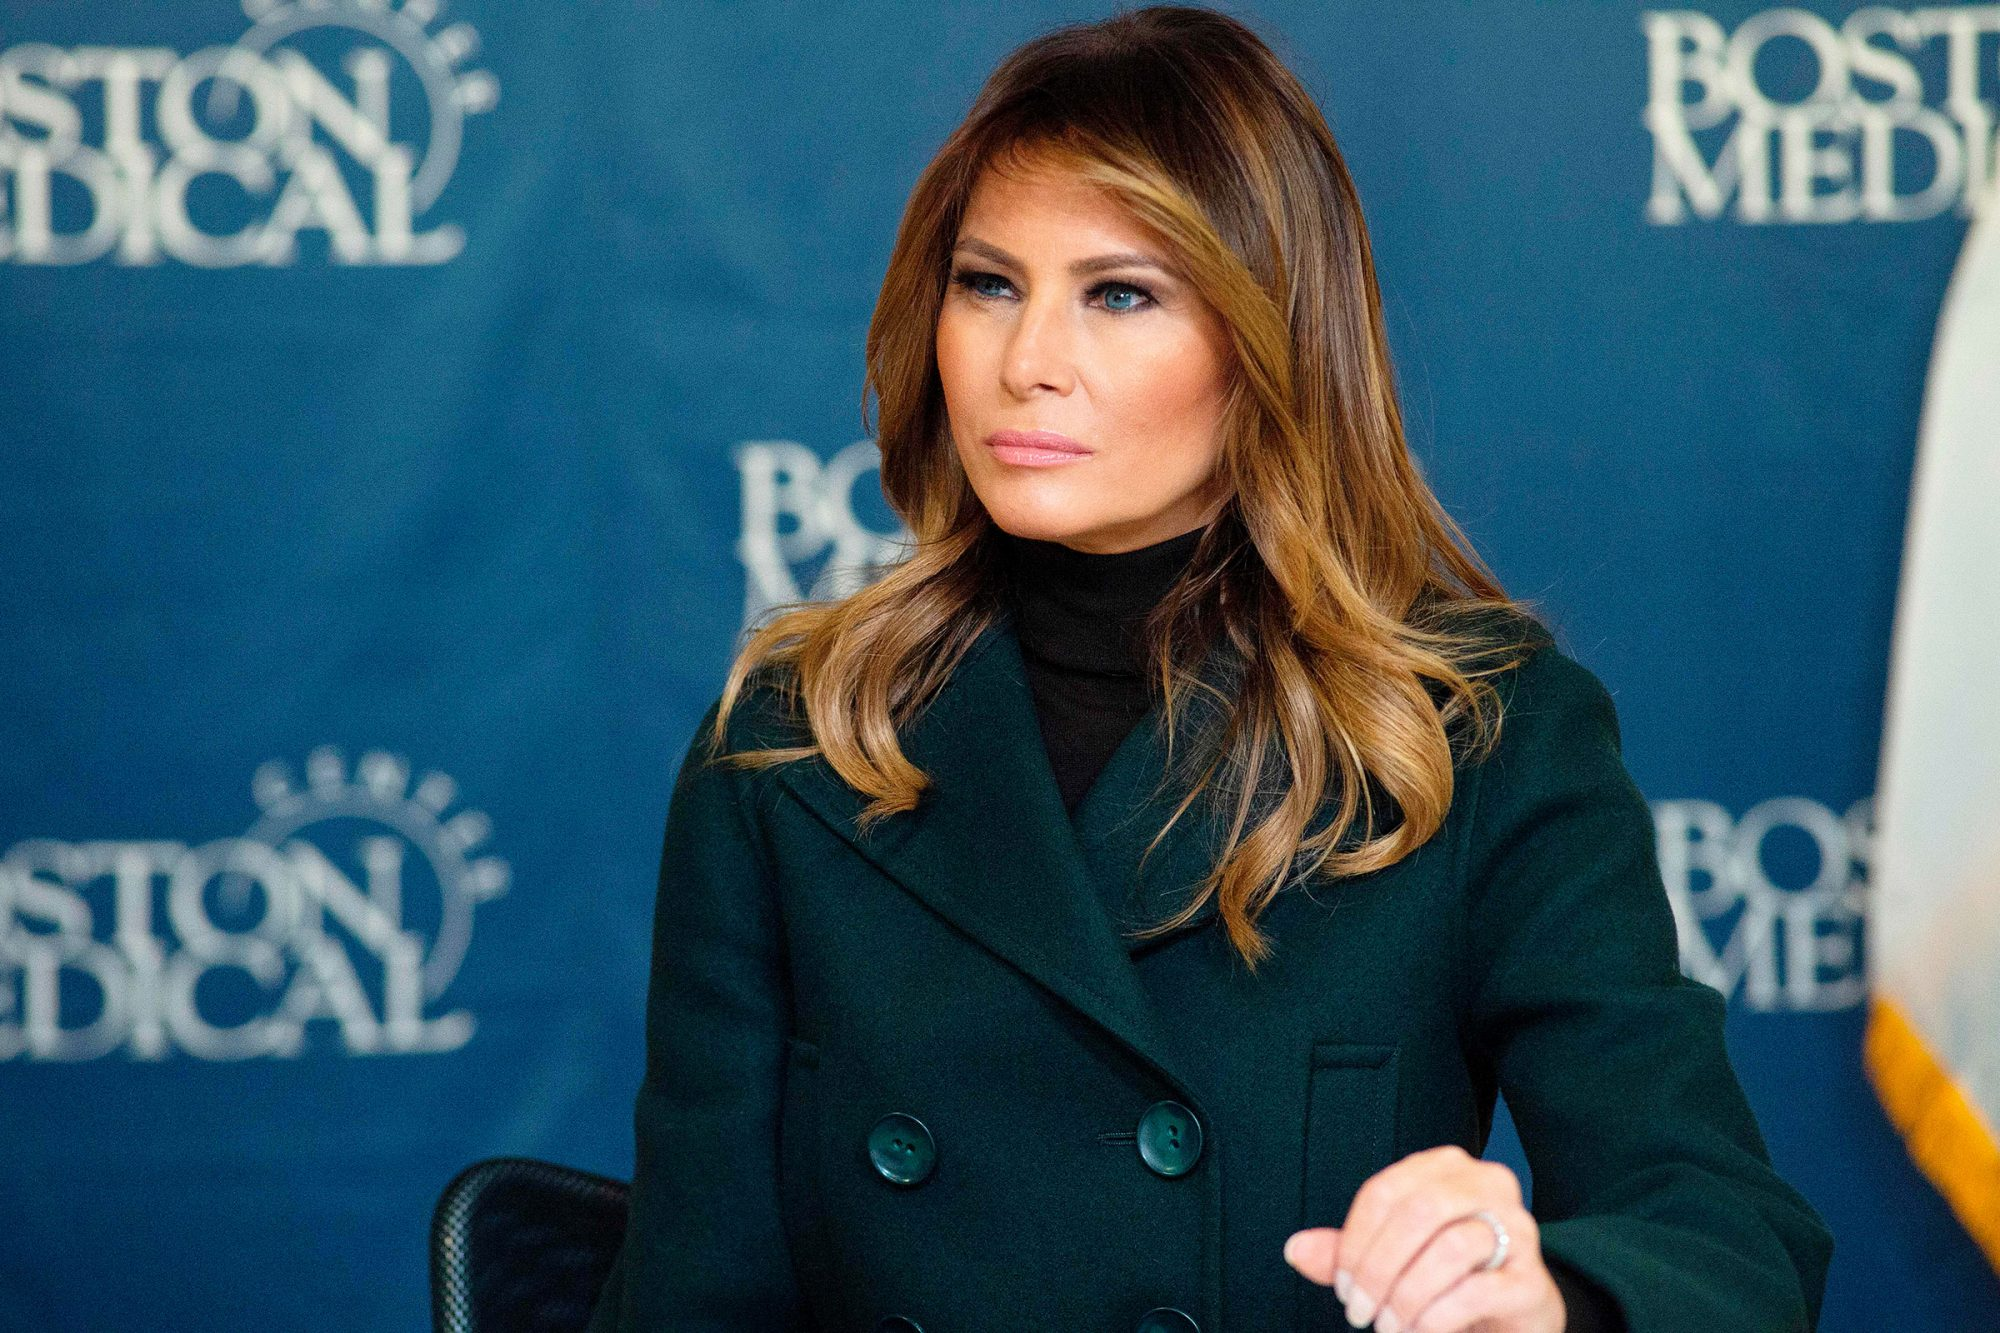 Melania Trump sits and listens to doctors during a round table and visit to Boston Medical Center